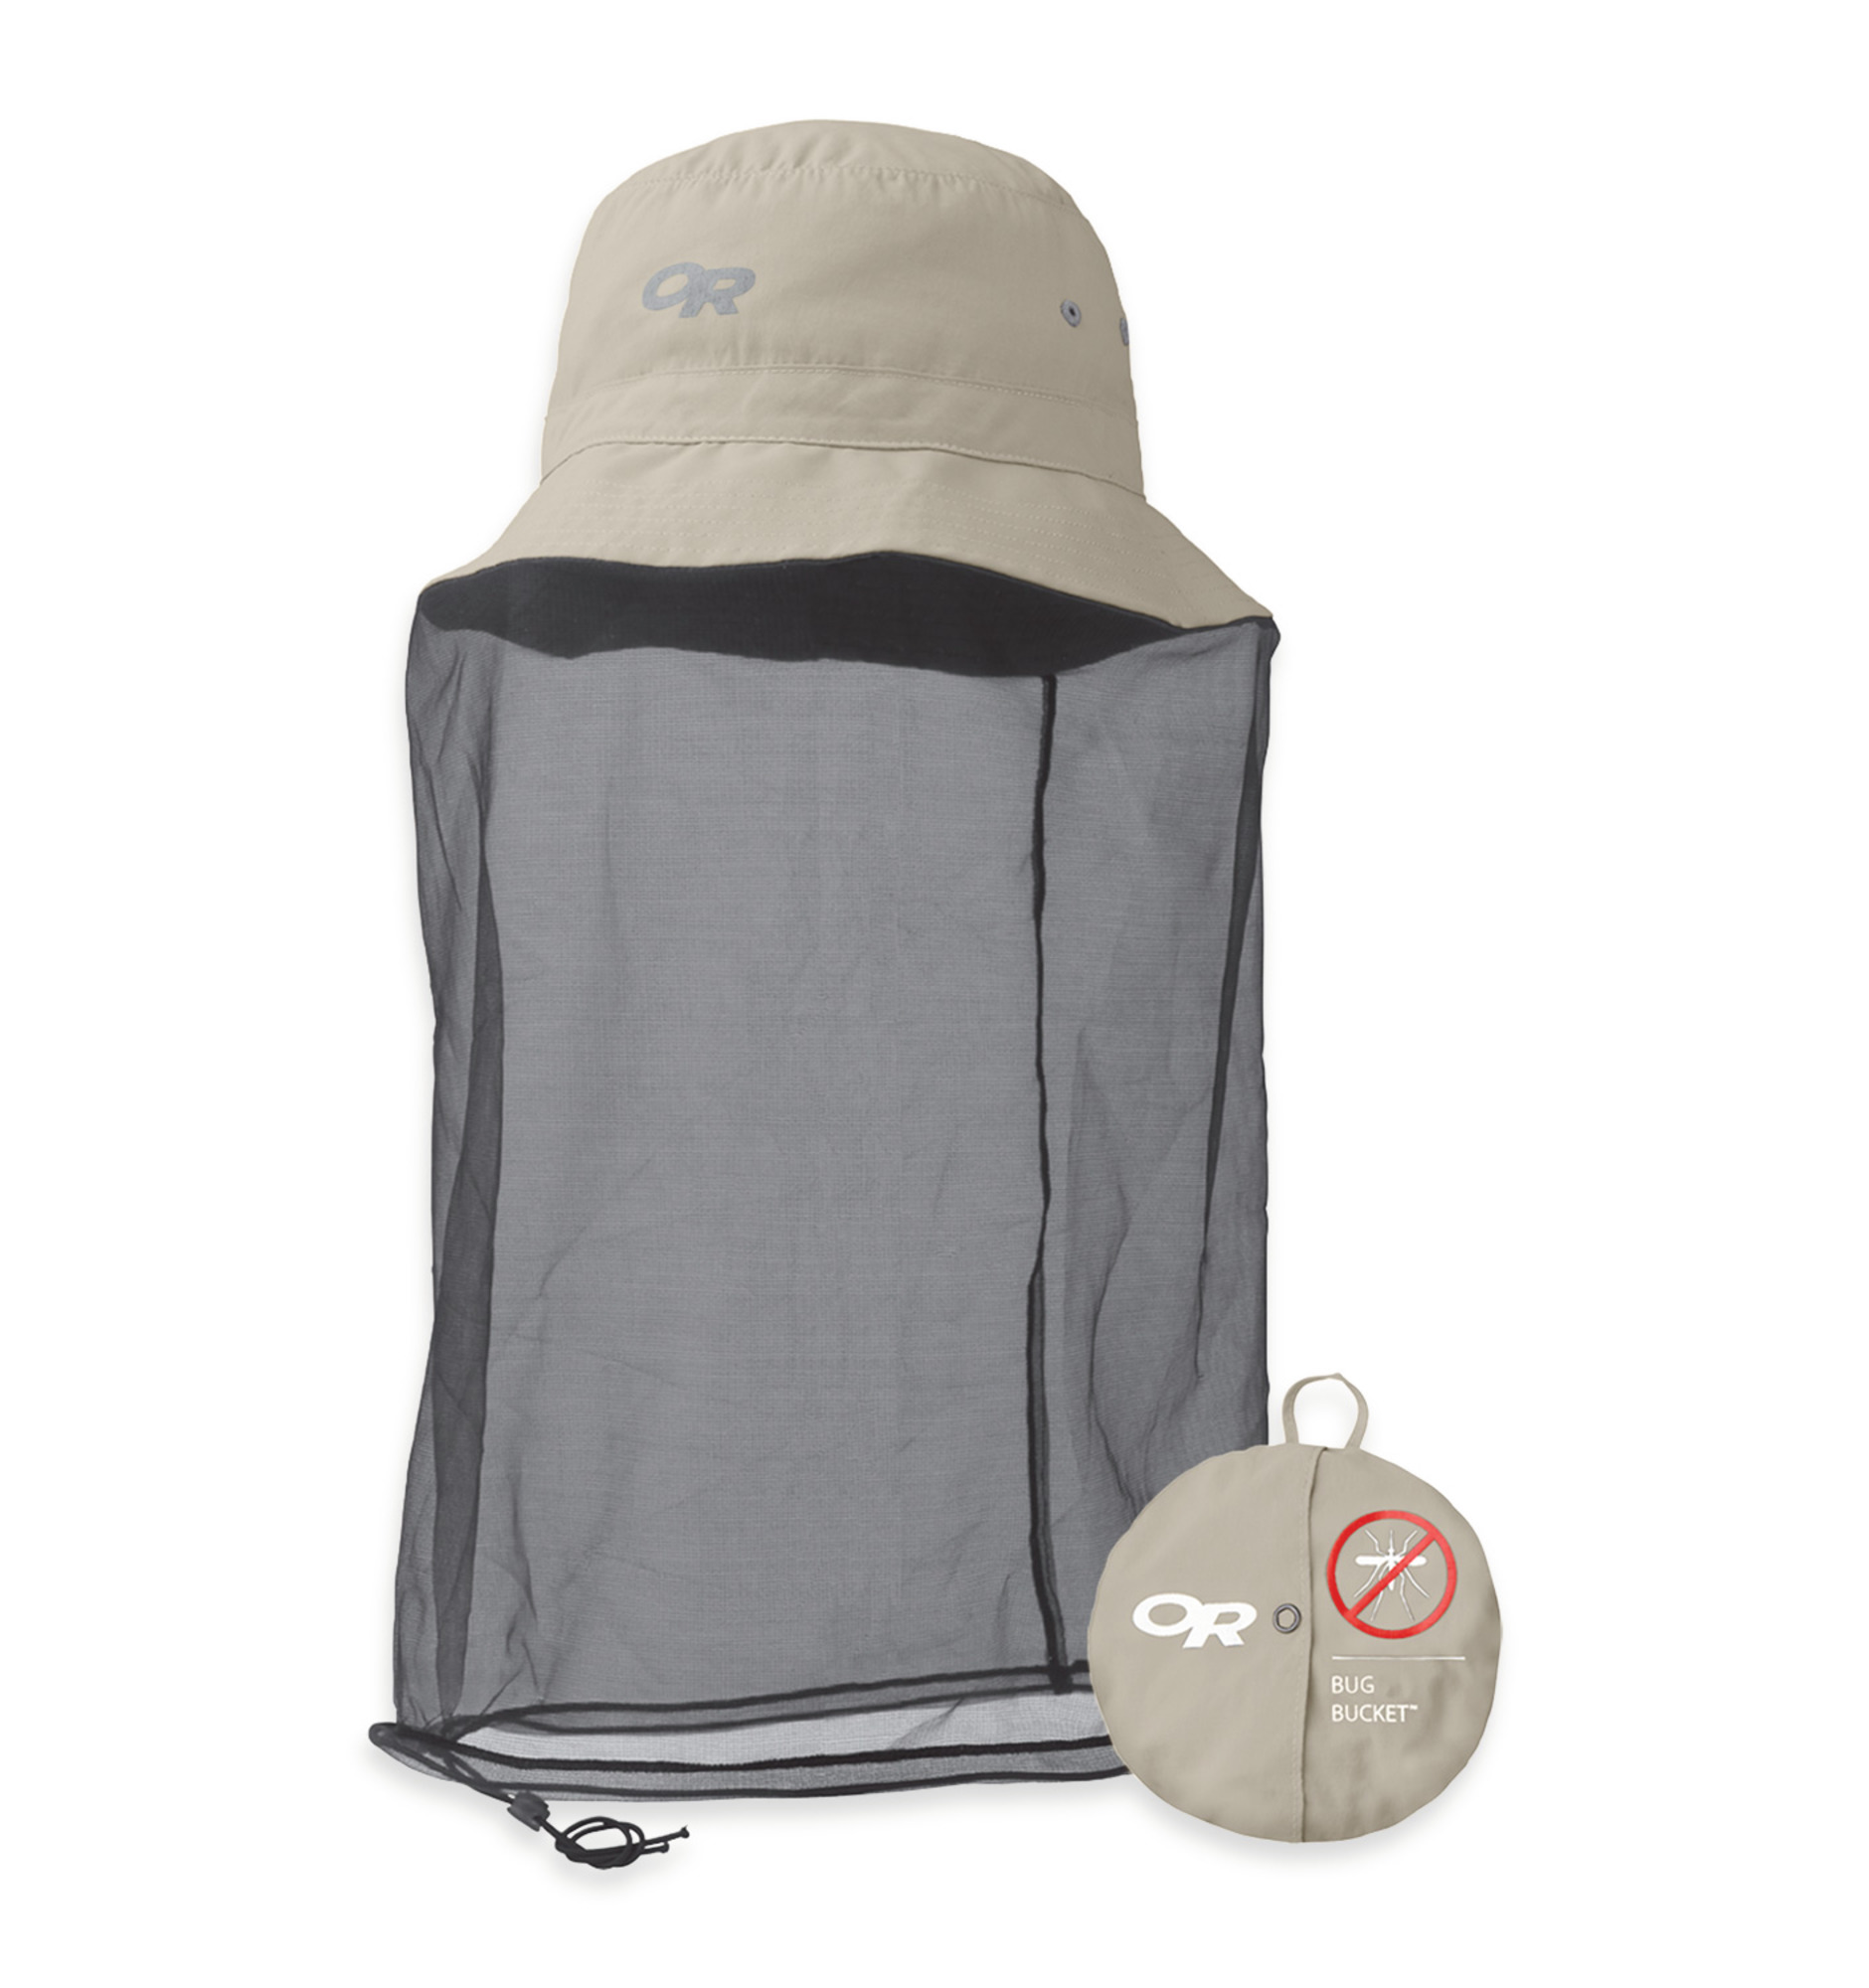 Outdoor Research Bug Bucket� Hat